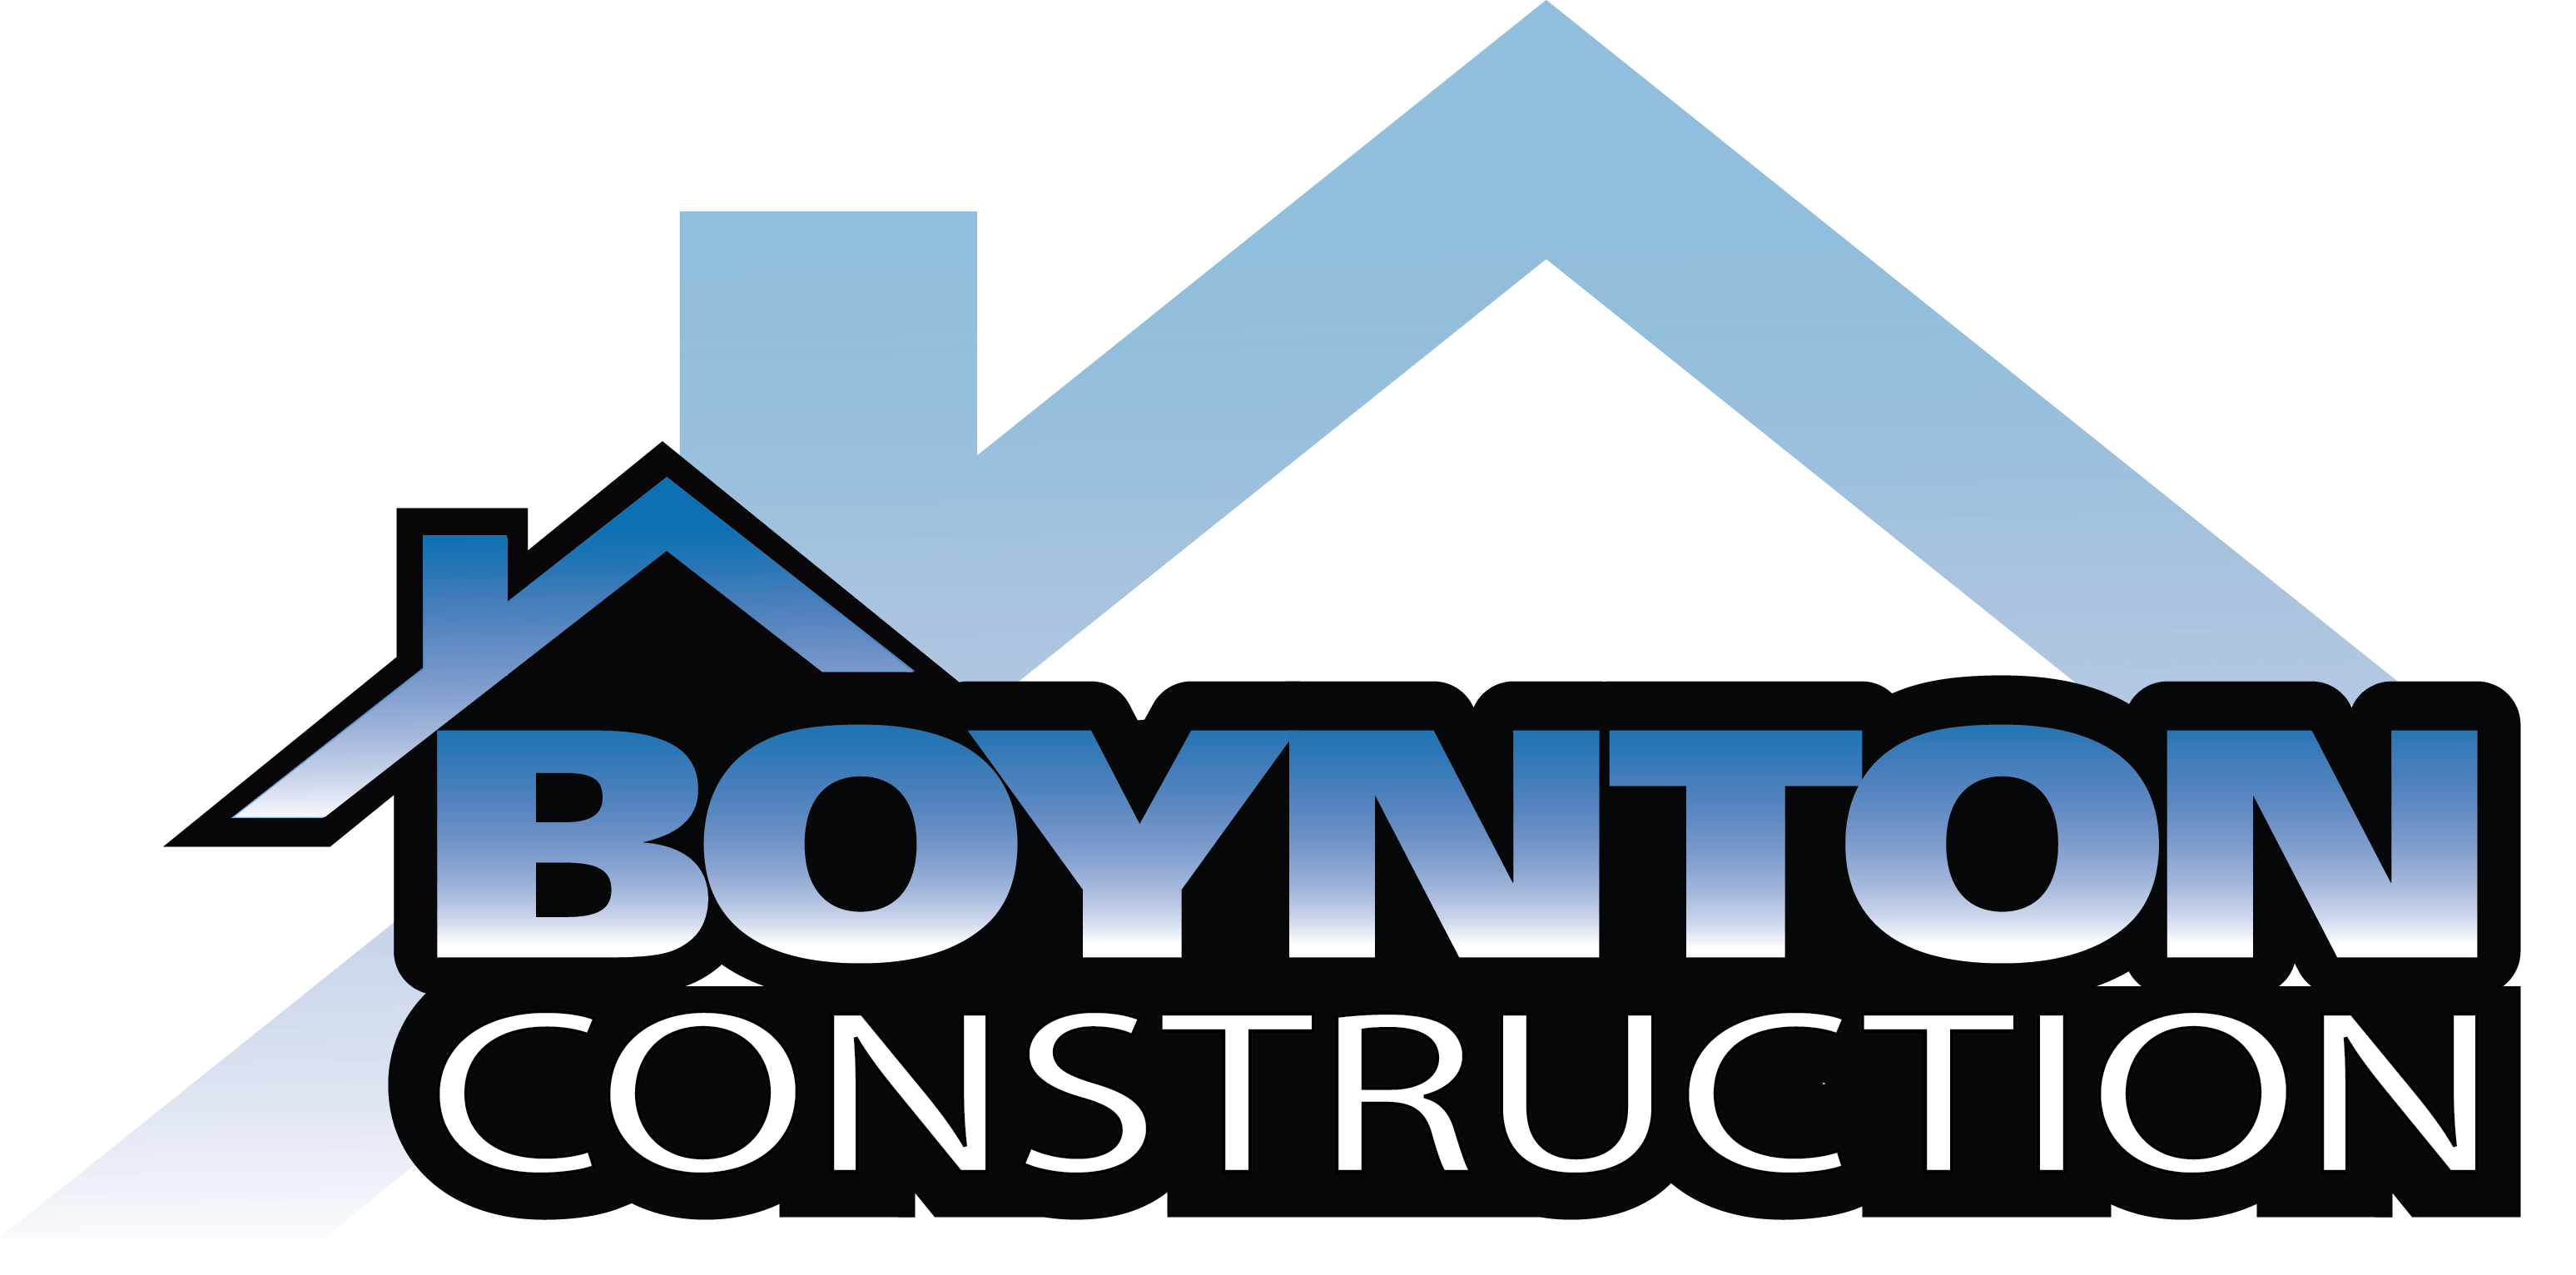 Boynton Construction Inc.